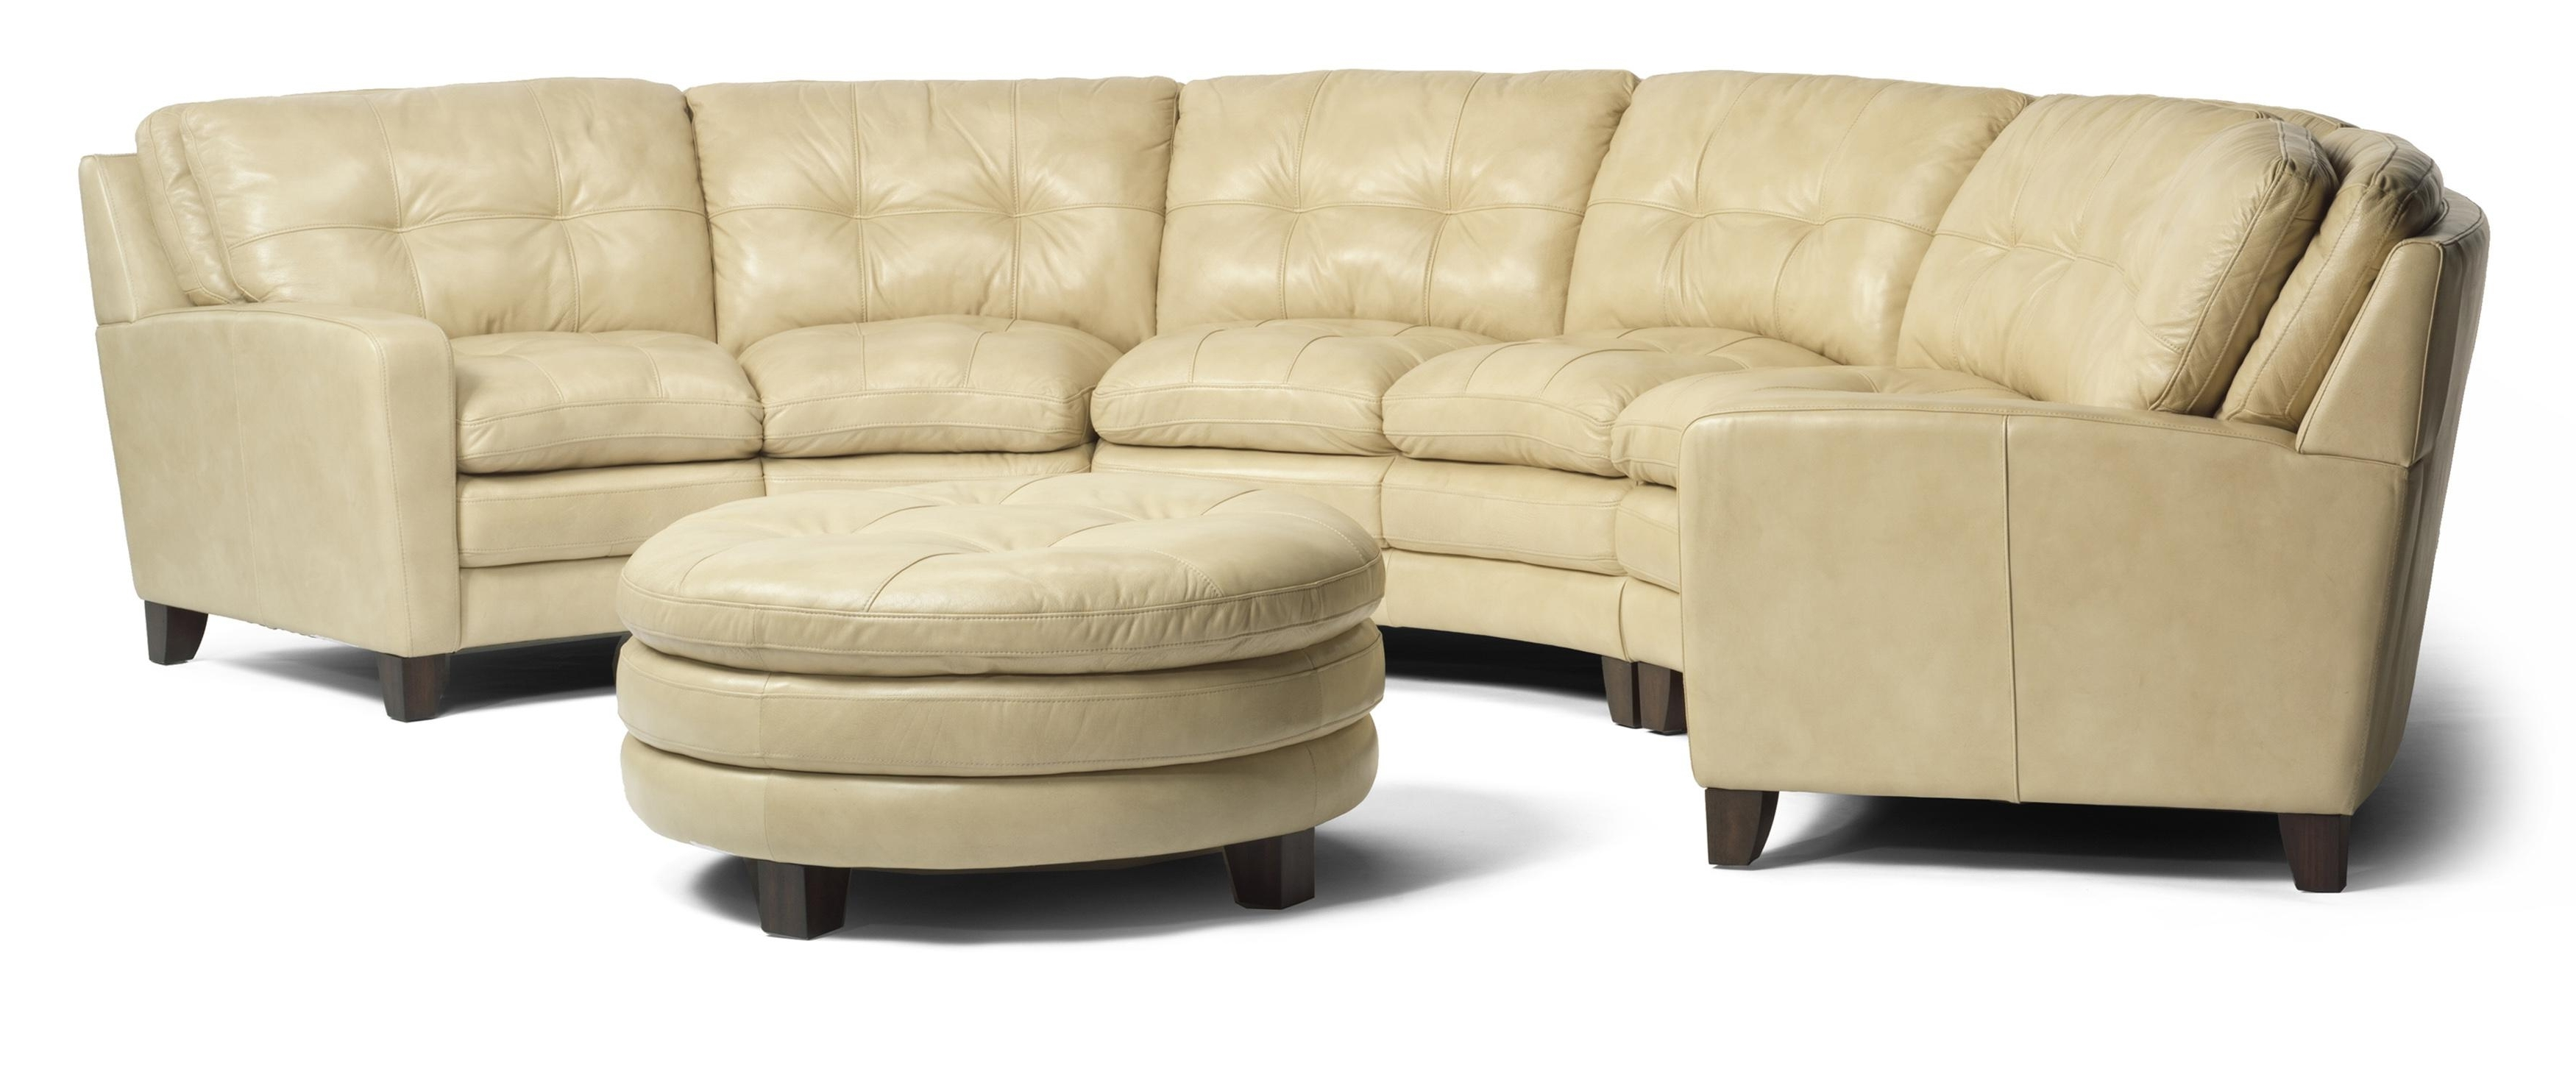 Widely Used Johnson City Tn Sectional Sofas Throughout Flexsteel Latitudes – South Street Curved Sectional Sofa – Ahfa (View 15 of 15)